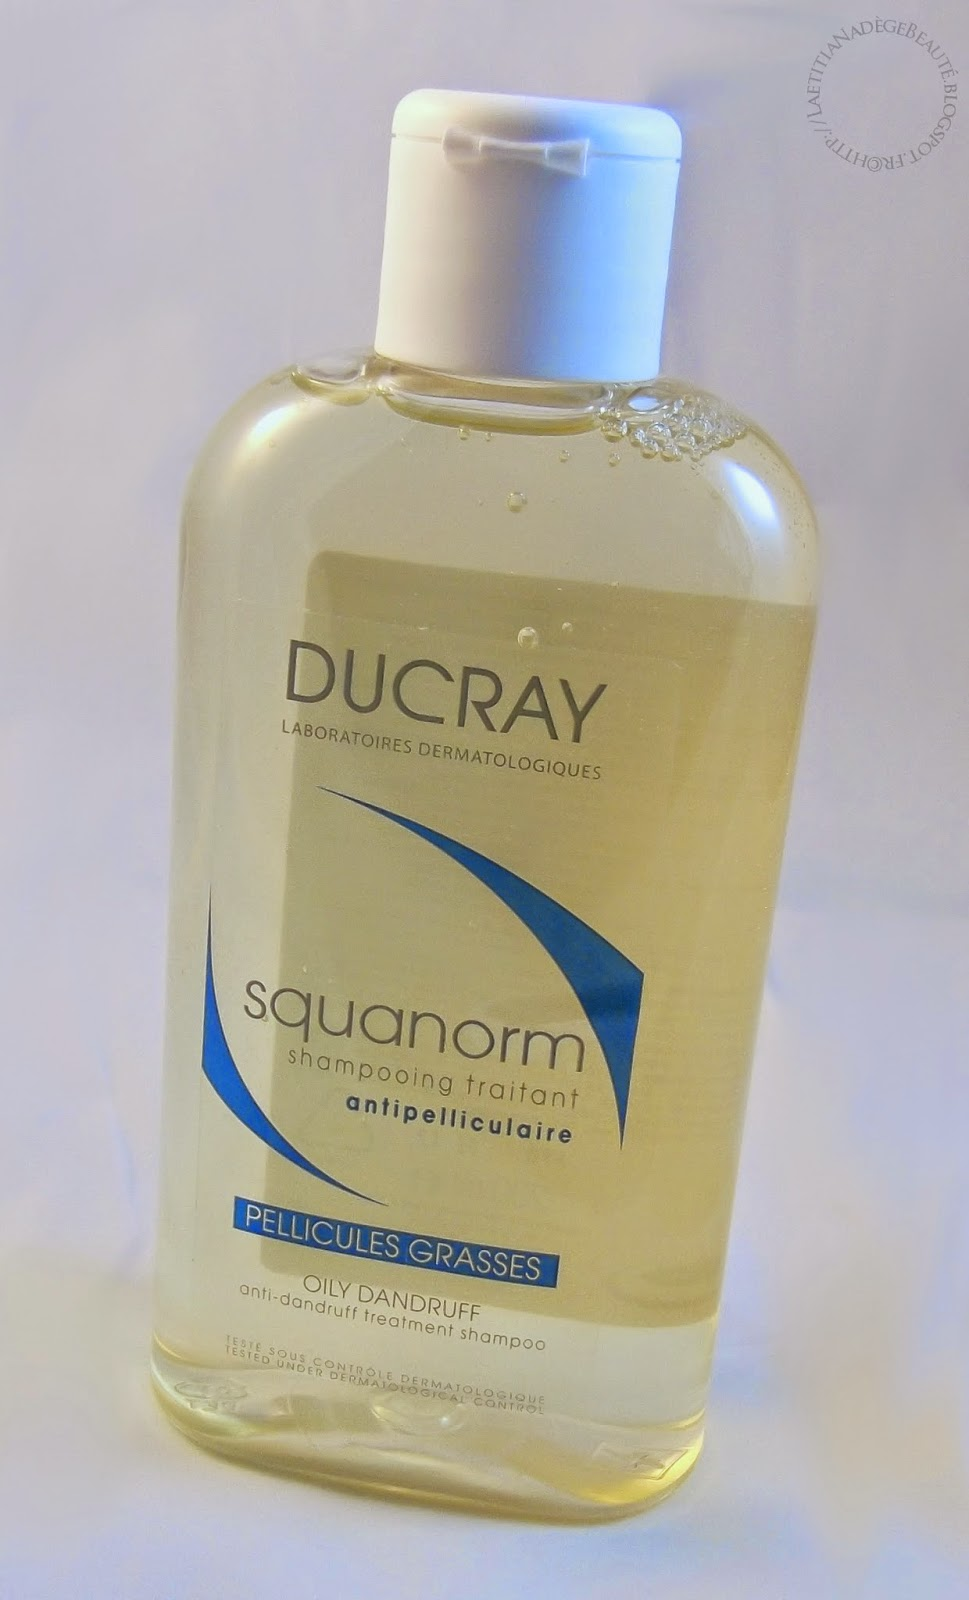 DUCRAY  Squanorm Shampooing Traitant antipelliculaire